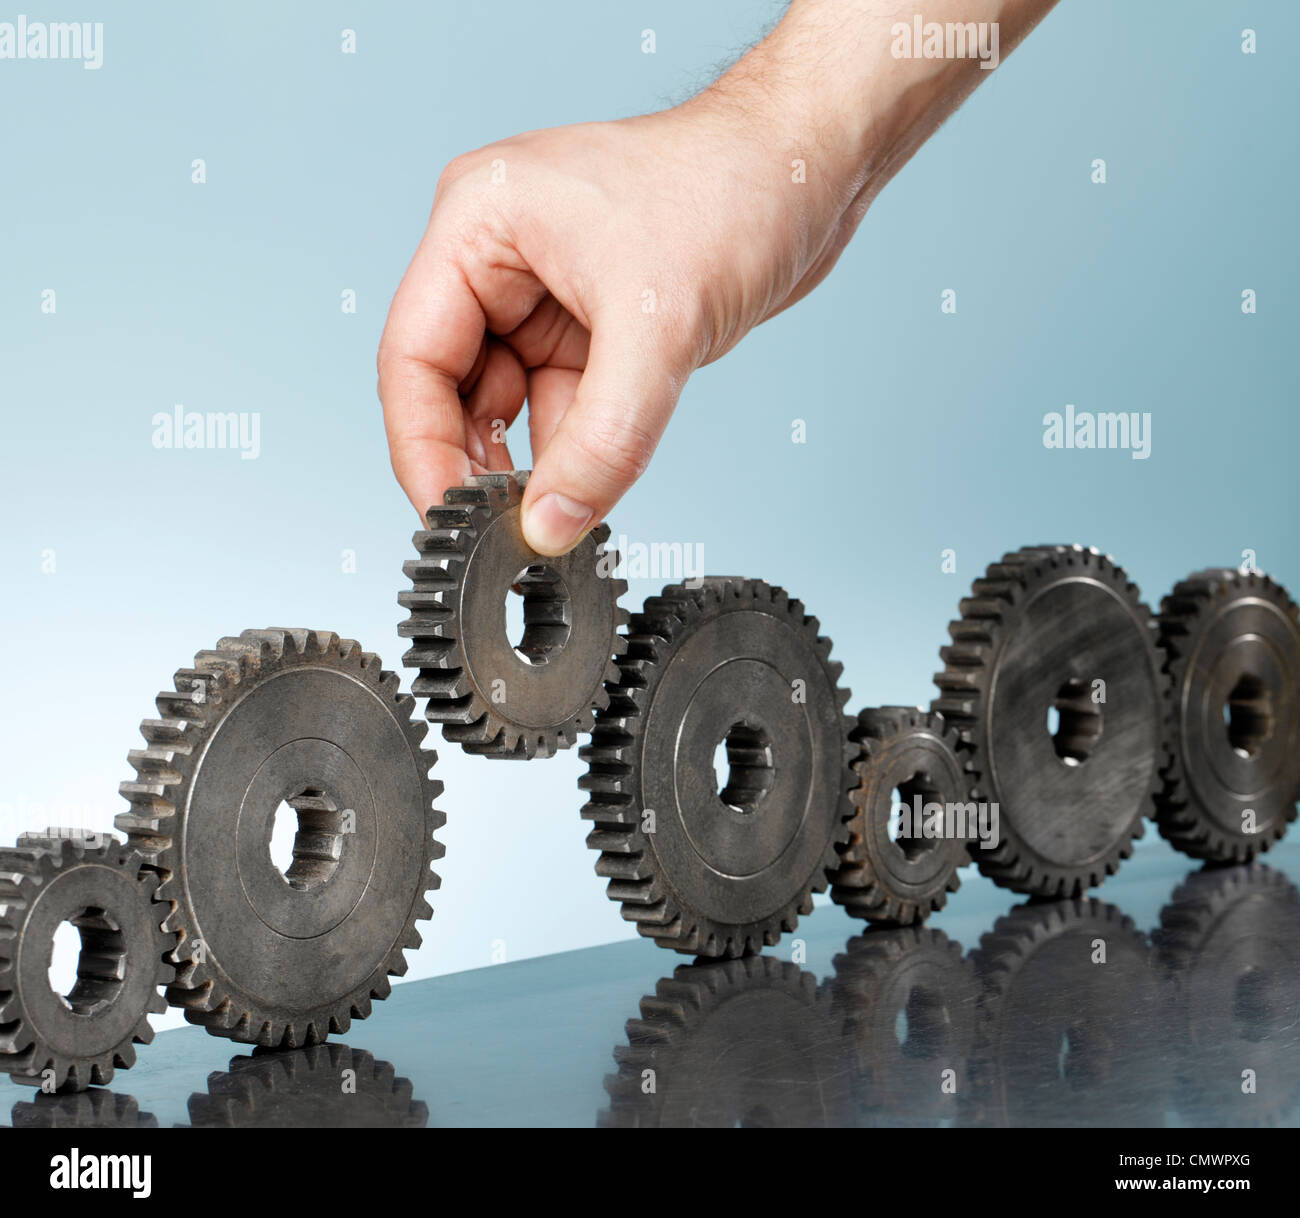 Man adding a cog gear in a row of old cog gears. - Stock Image